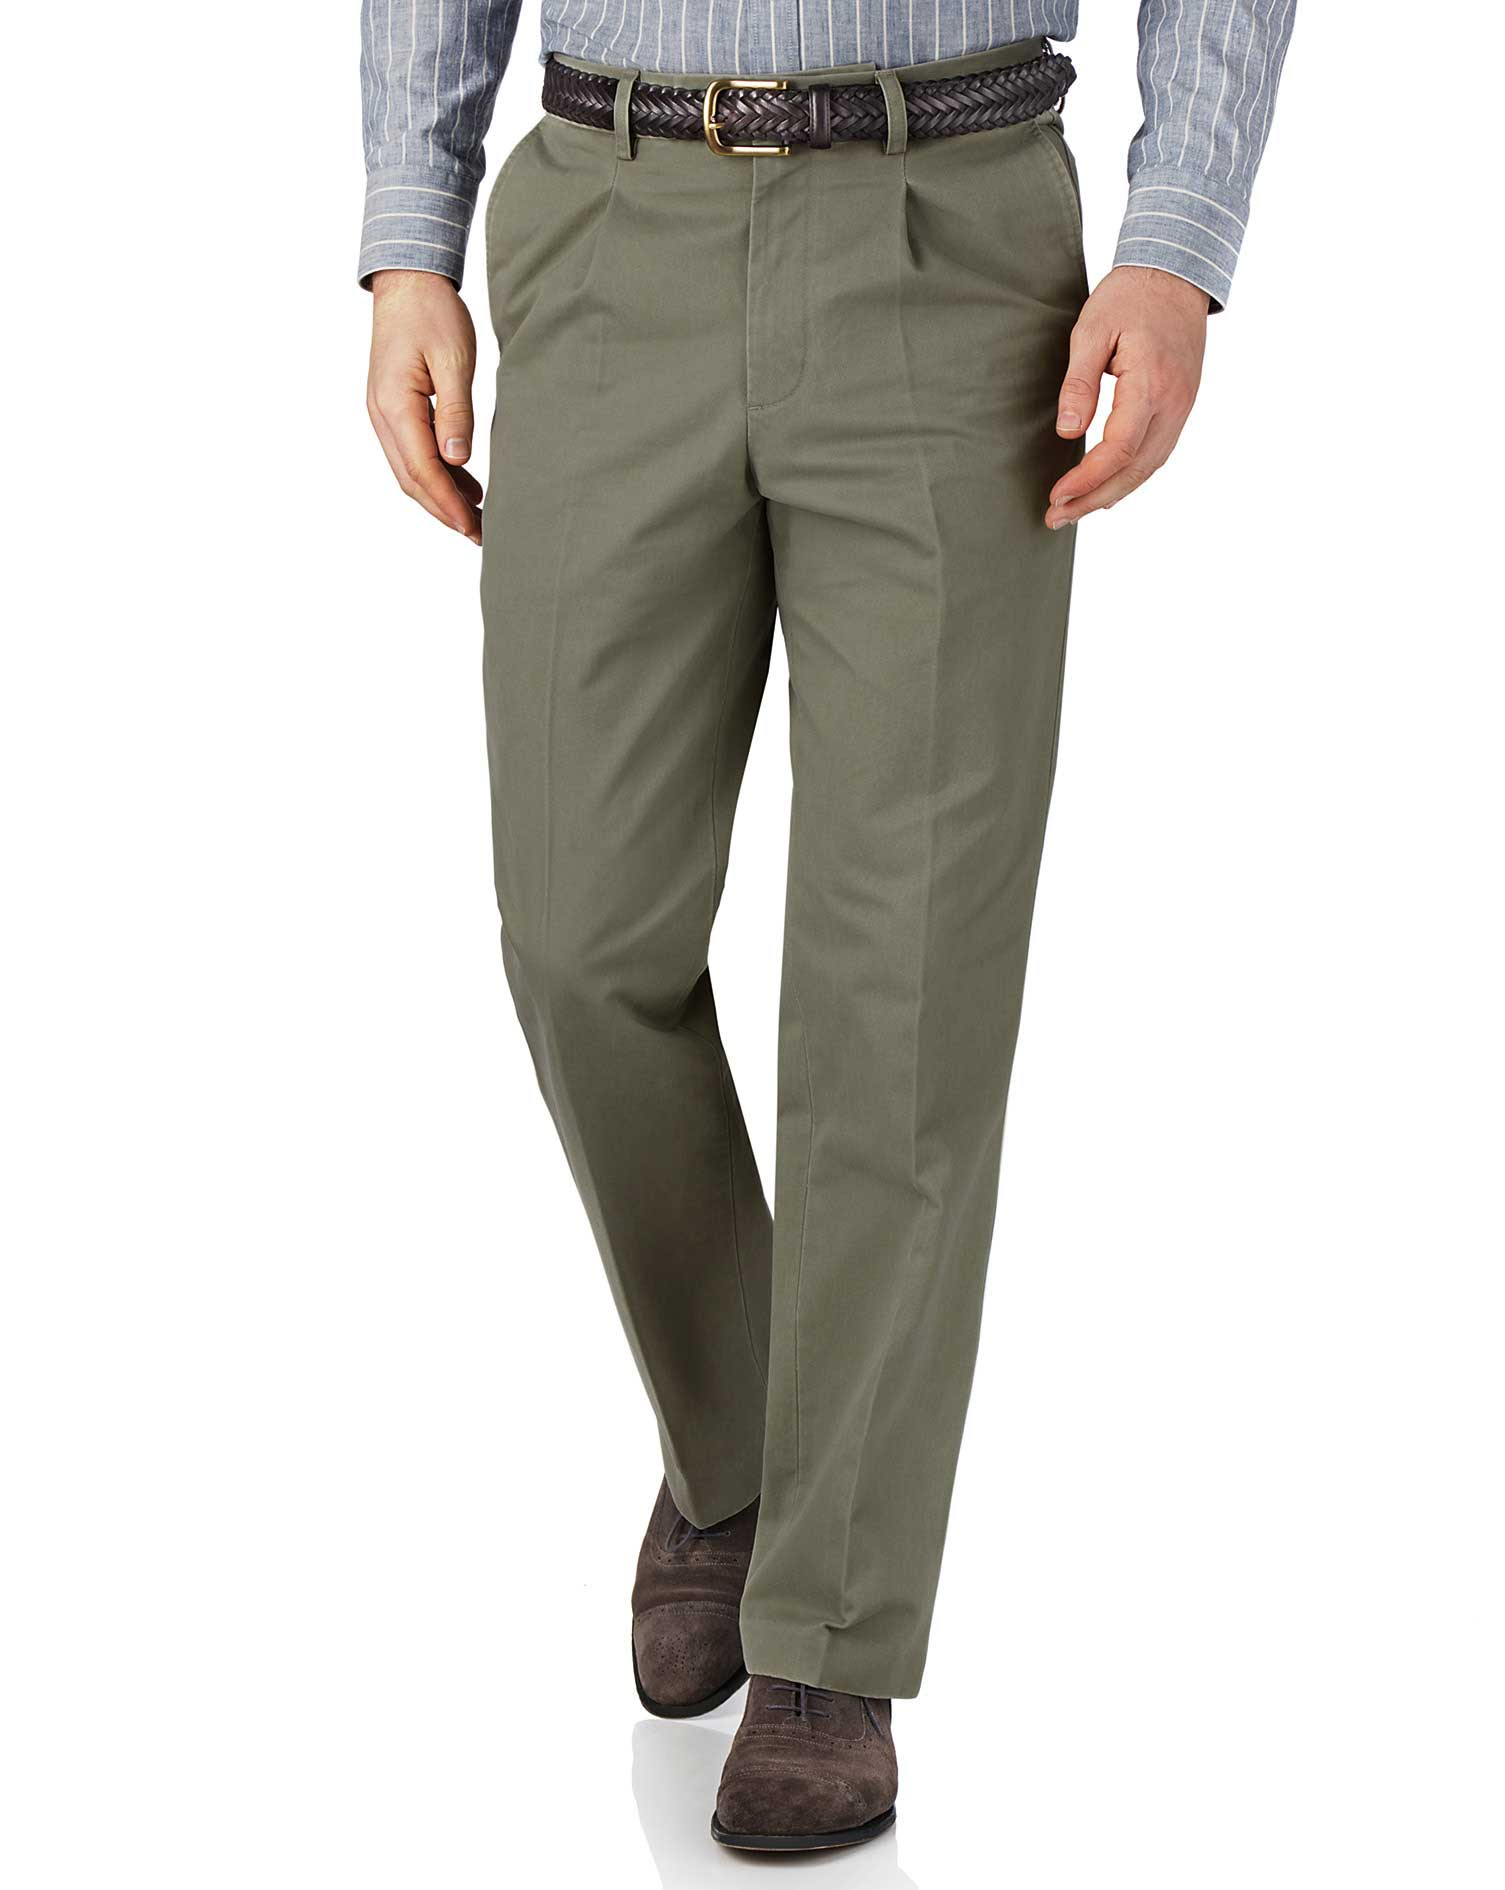 Light Green Classic Fit Single Pleat Cotton Chino Trousers Size W36 L32 by Charles Tyrwhitt